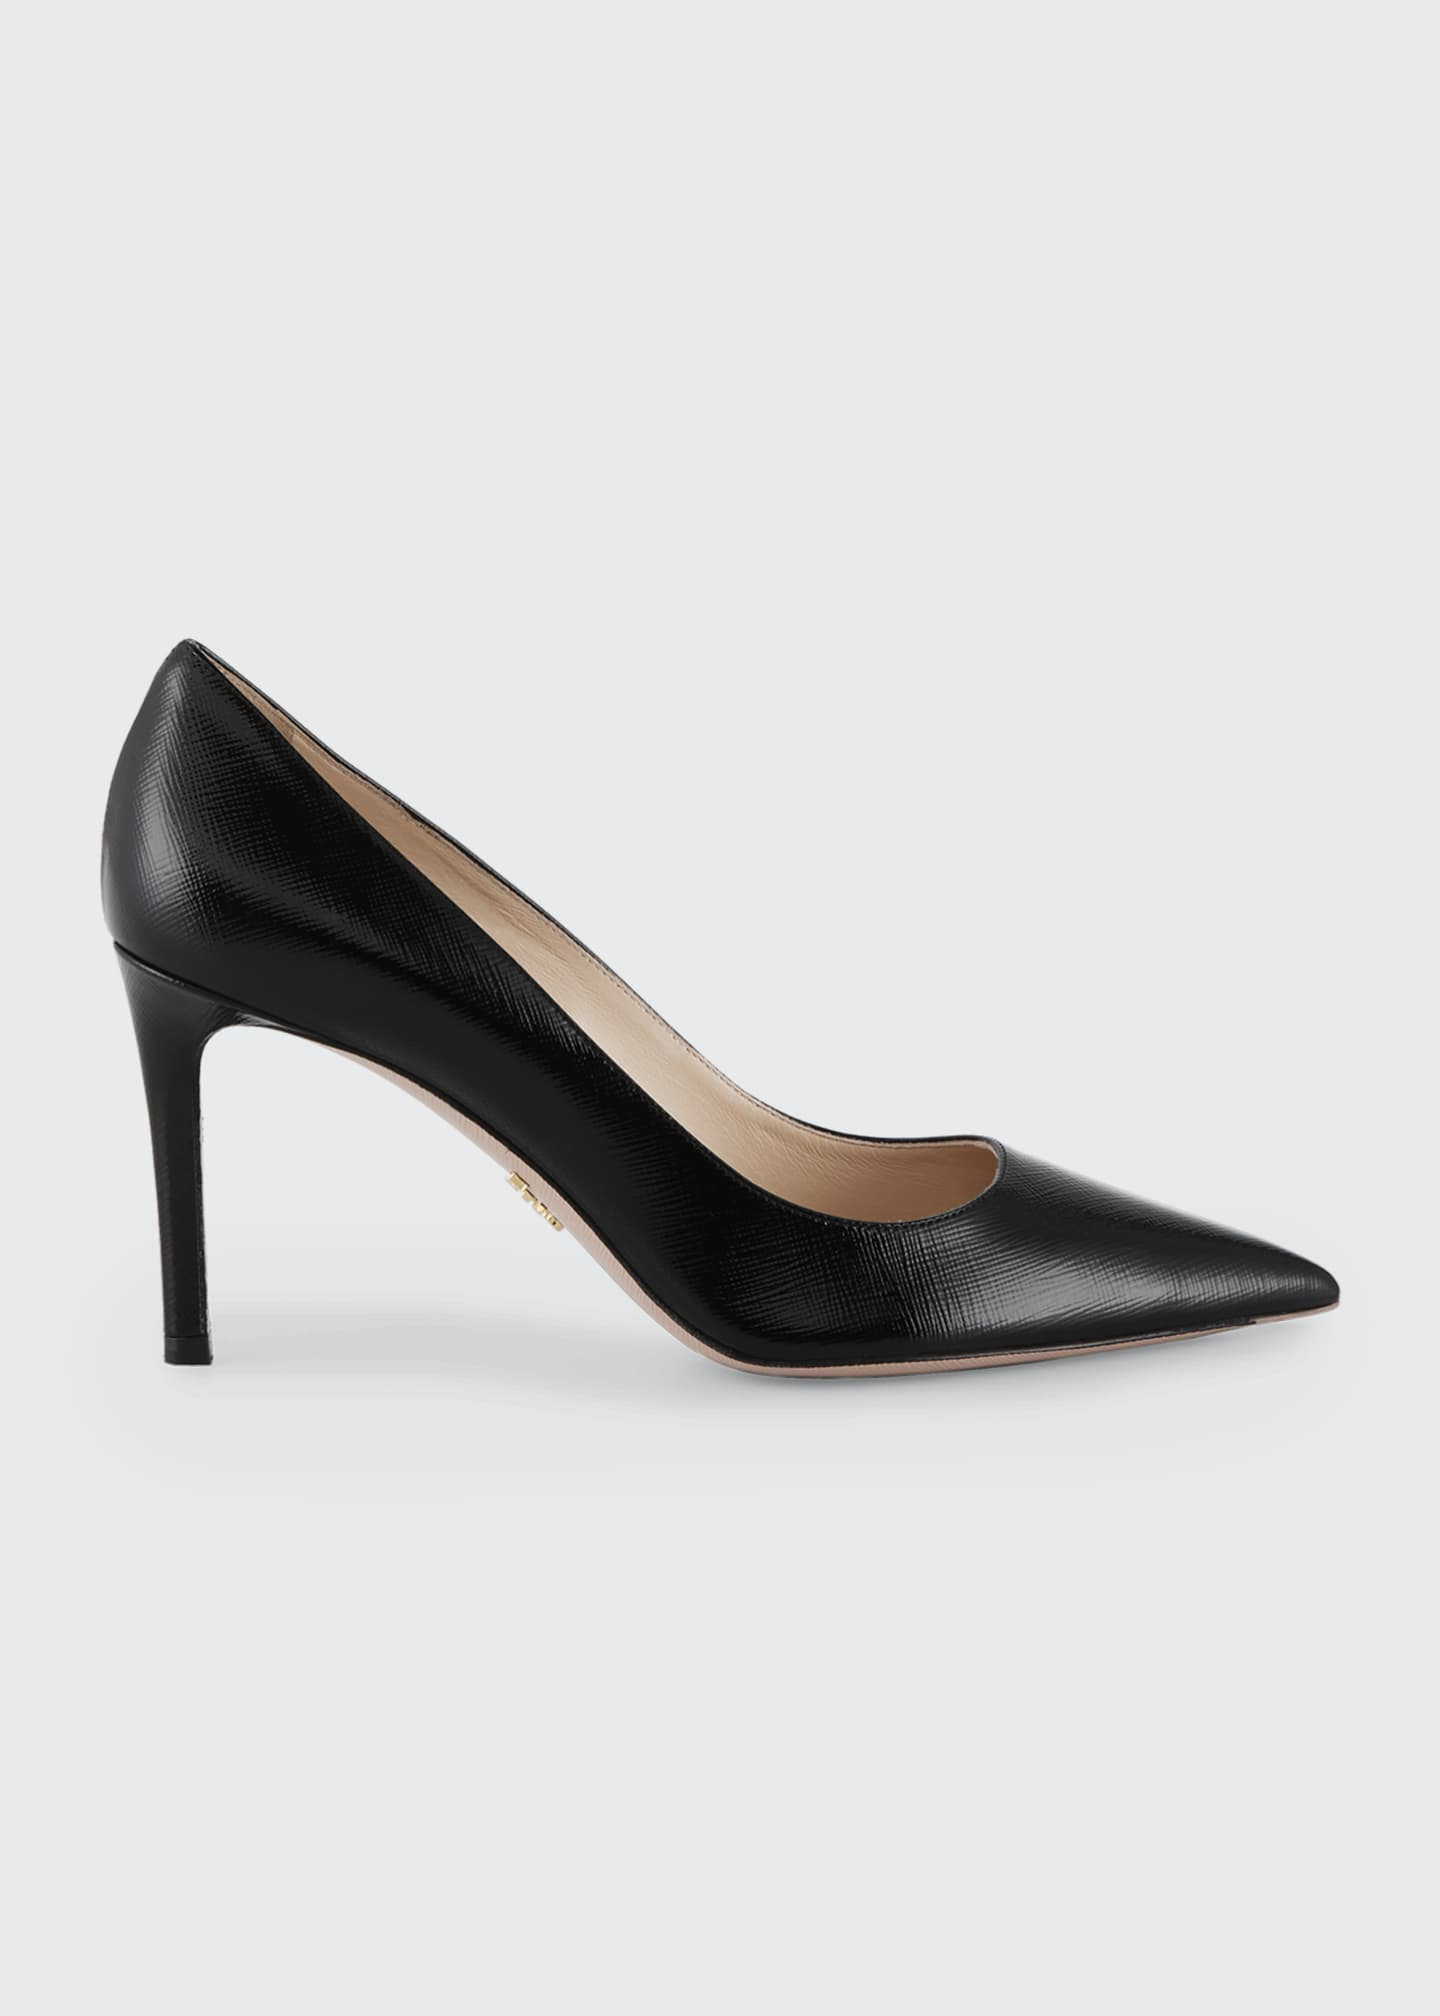 Prada Patent Saffiano Leather 85mm Pumps